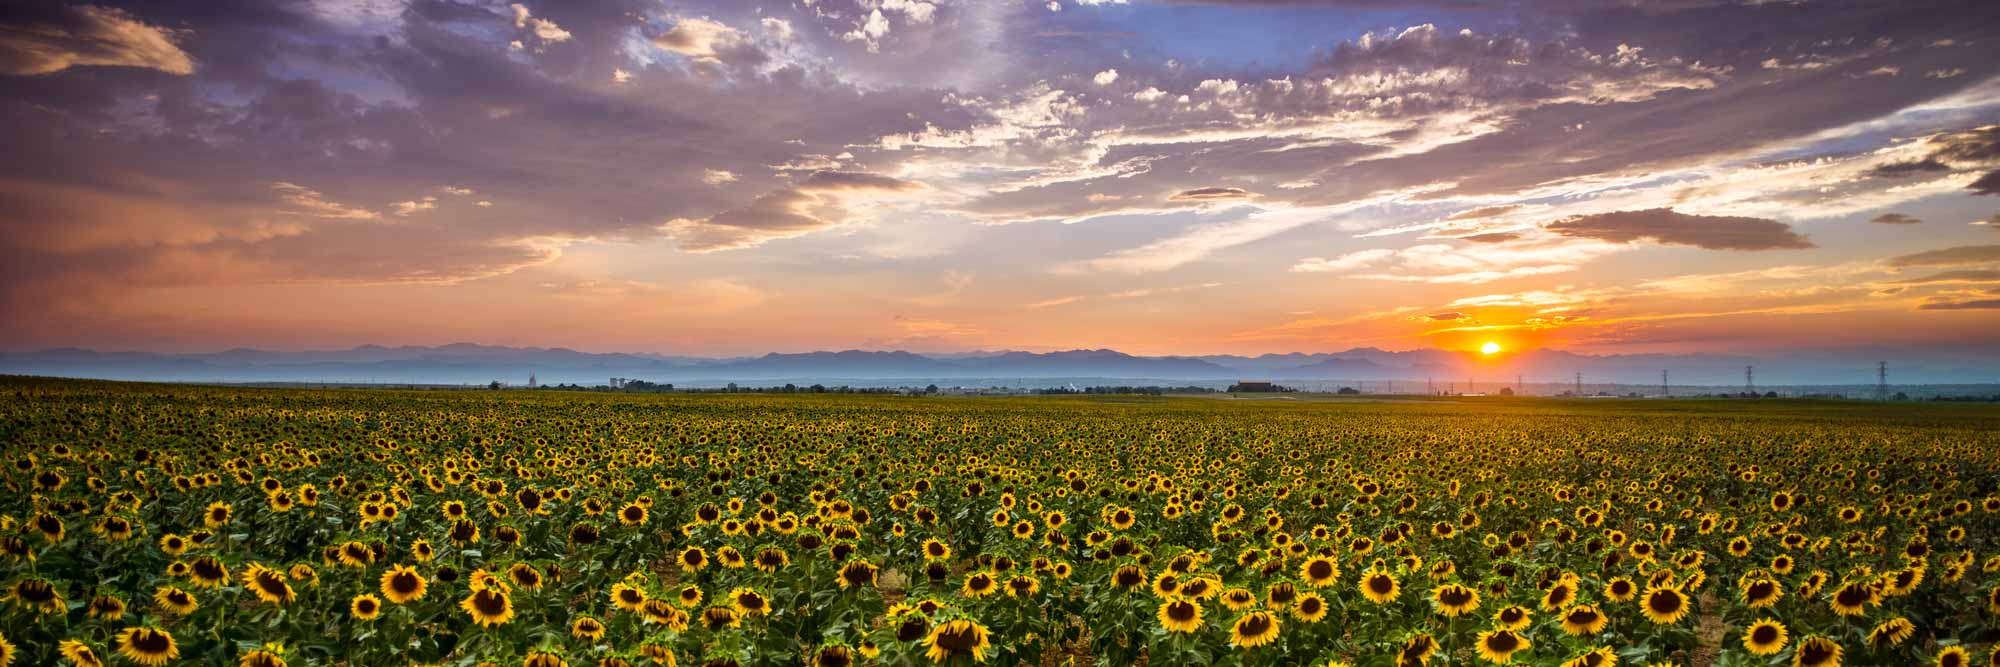 Sunflowers panoramic Denver Colorado sunset Rocky Mountains high definition HD professional landscape photography